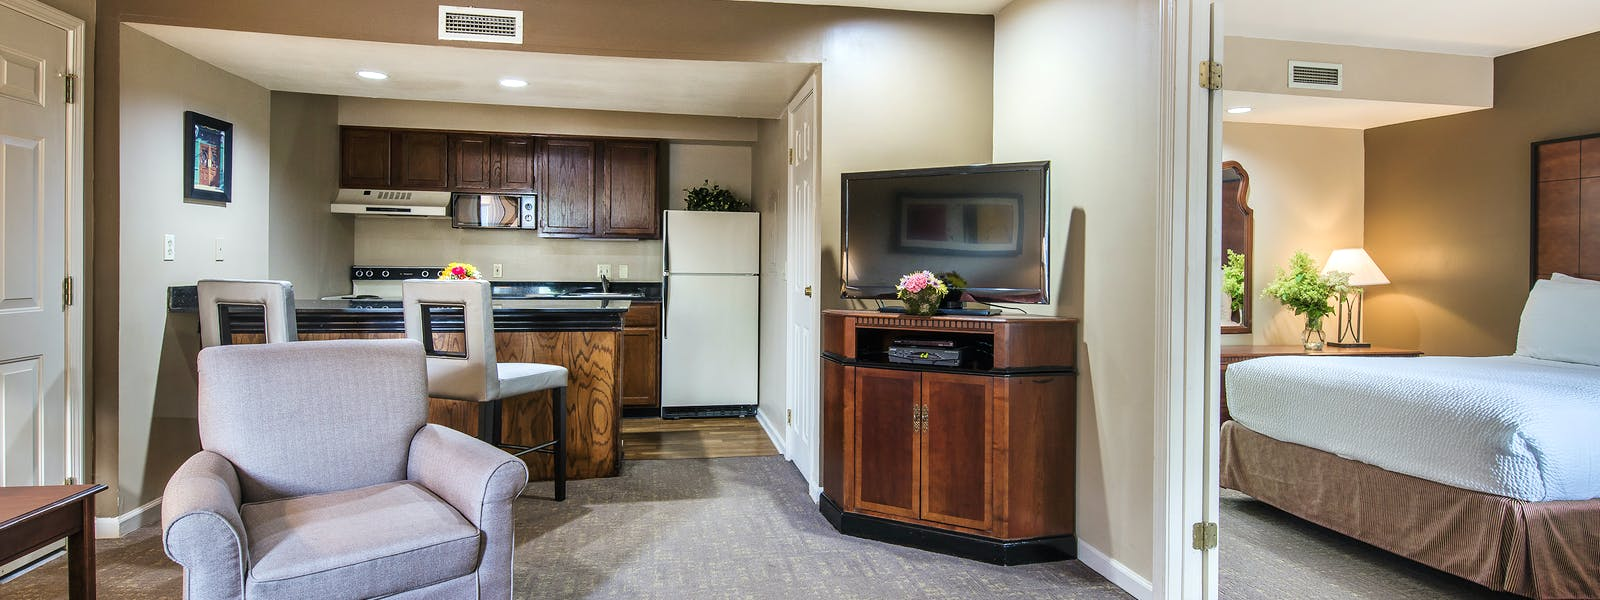 Cloverleaf Suites Living Room with Bedroom Shown